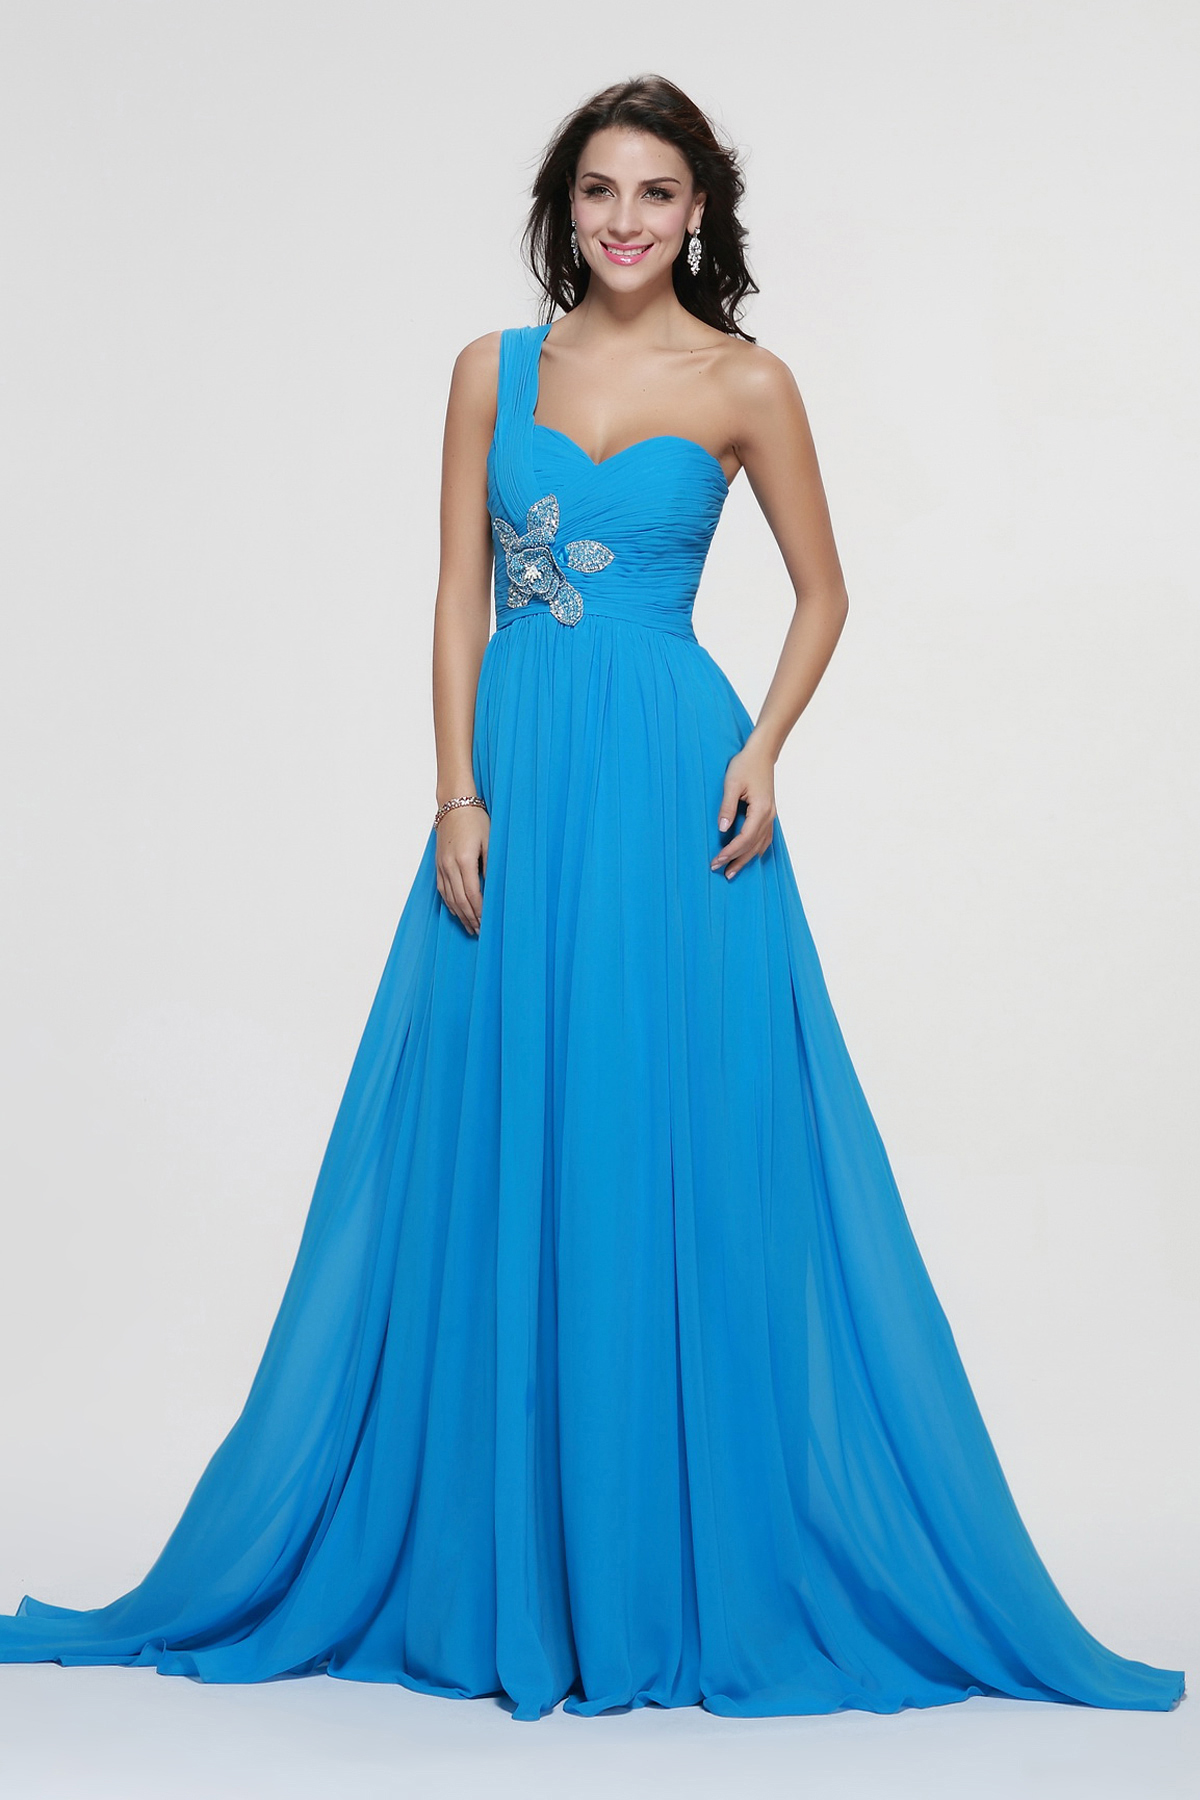 Sleeveless One Shoulder Beading A-line Pool Blue Prom Dress